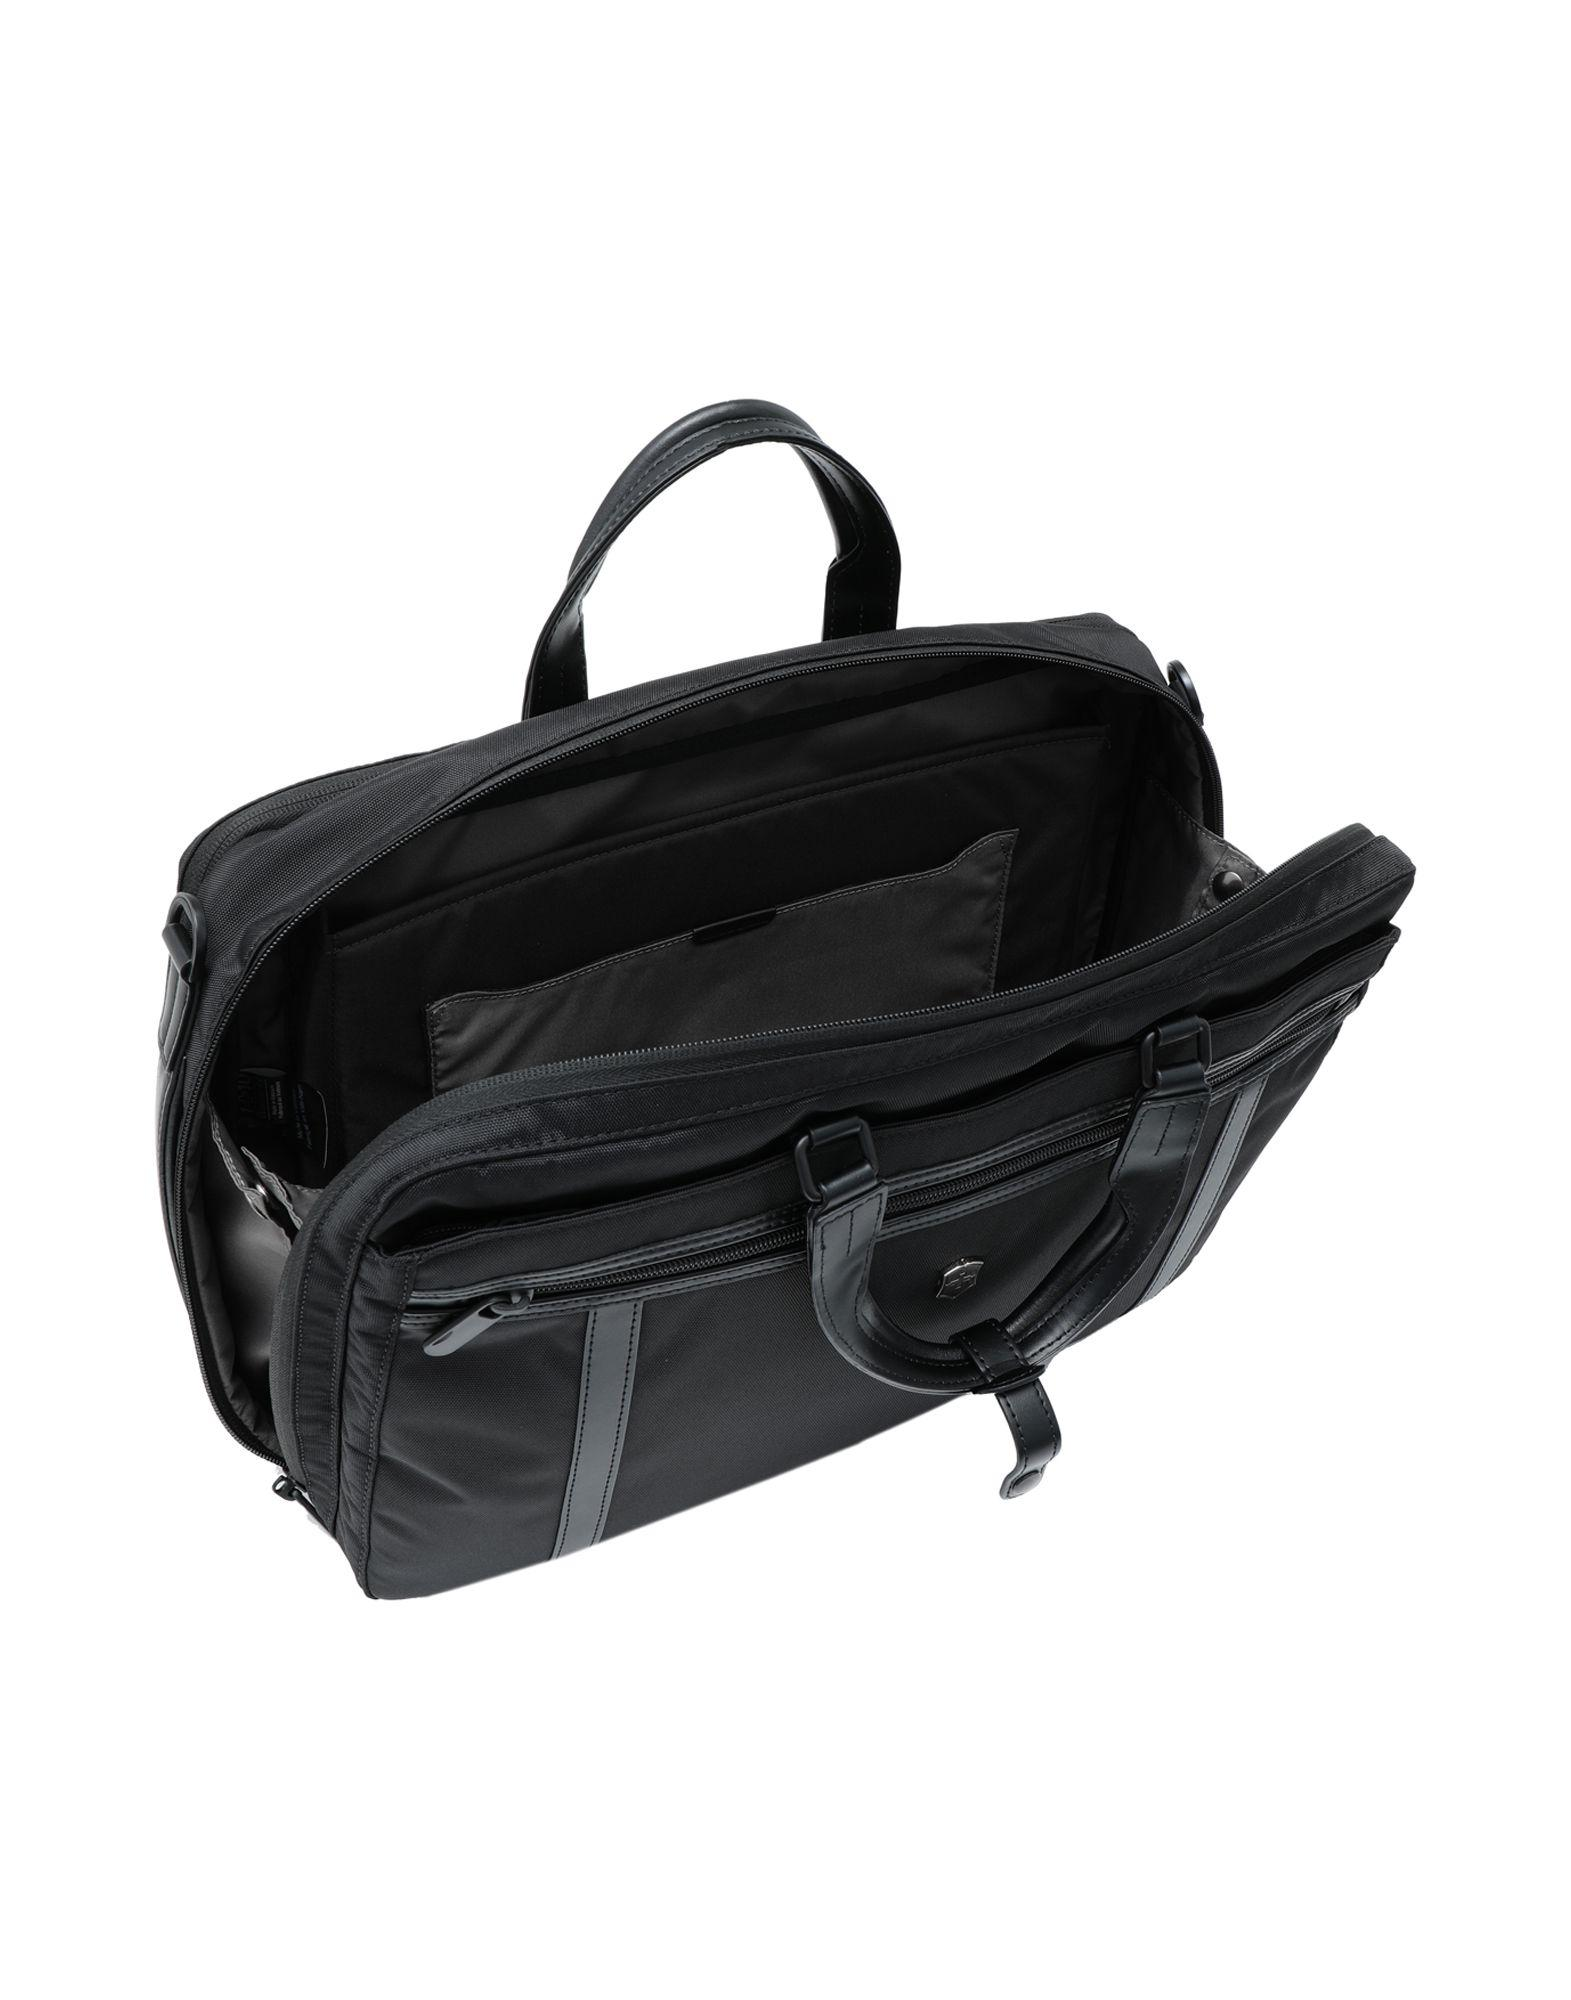 32078c5f7e Lyst - Victorinox Work Bags in Black